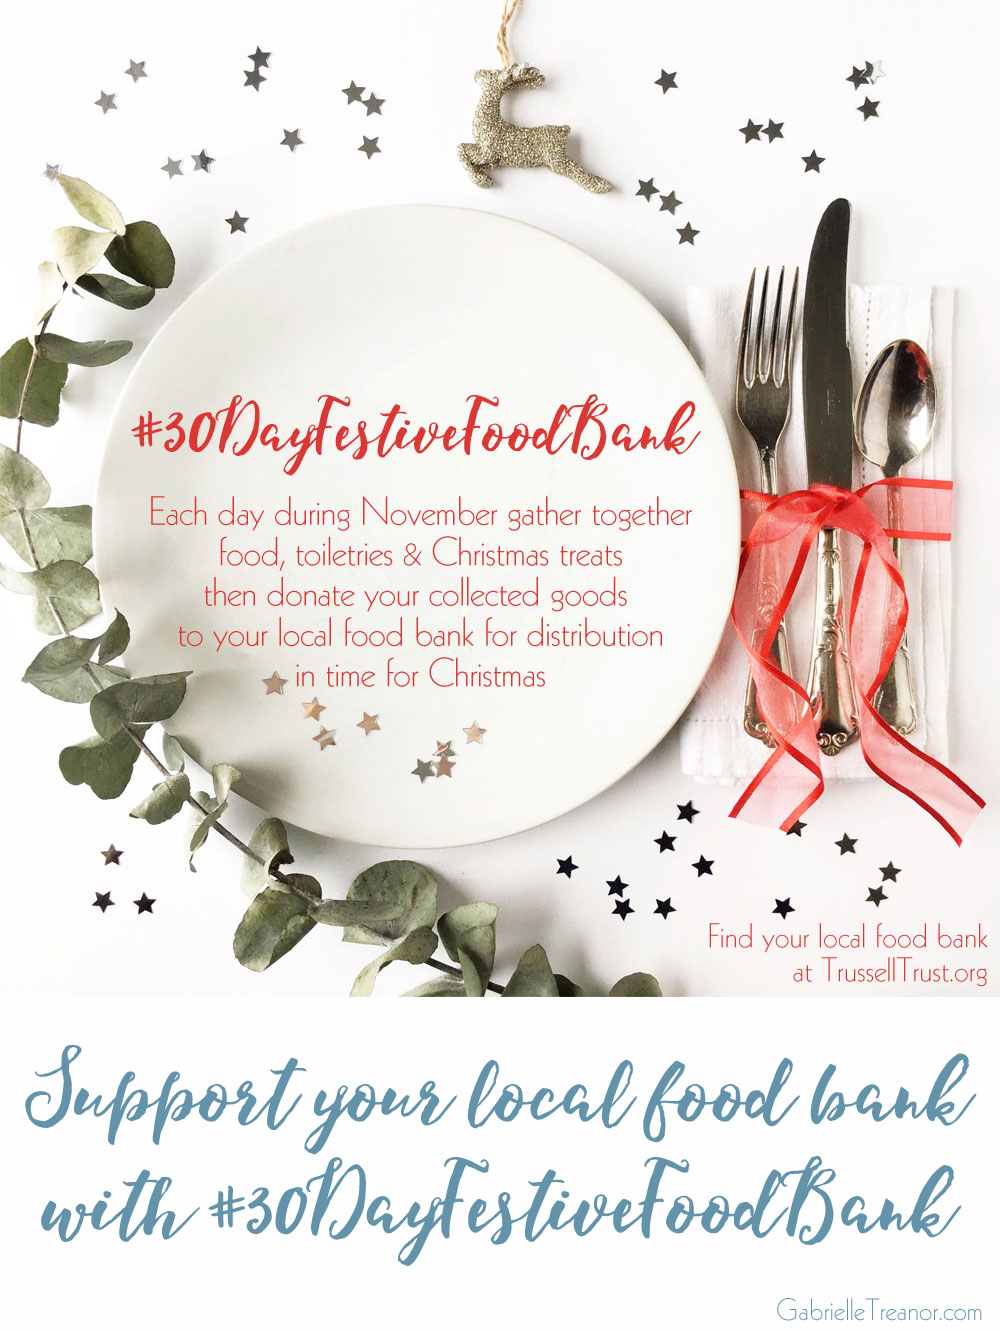 Support your local food bank by collecting an item of food every day in November #30DayFestiveFoodBank GabrielleTreanor.com